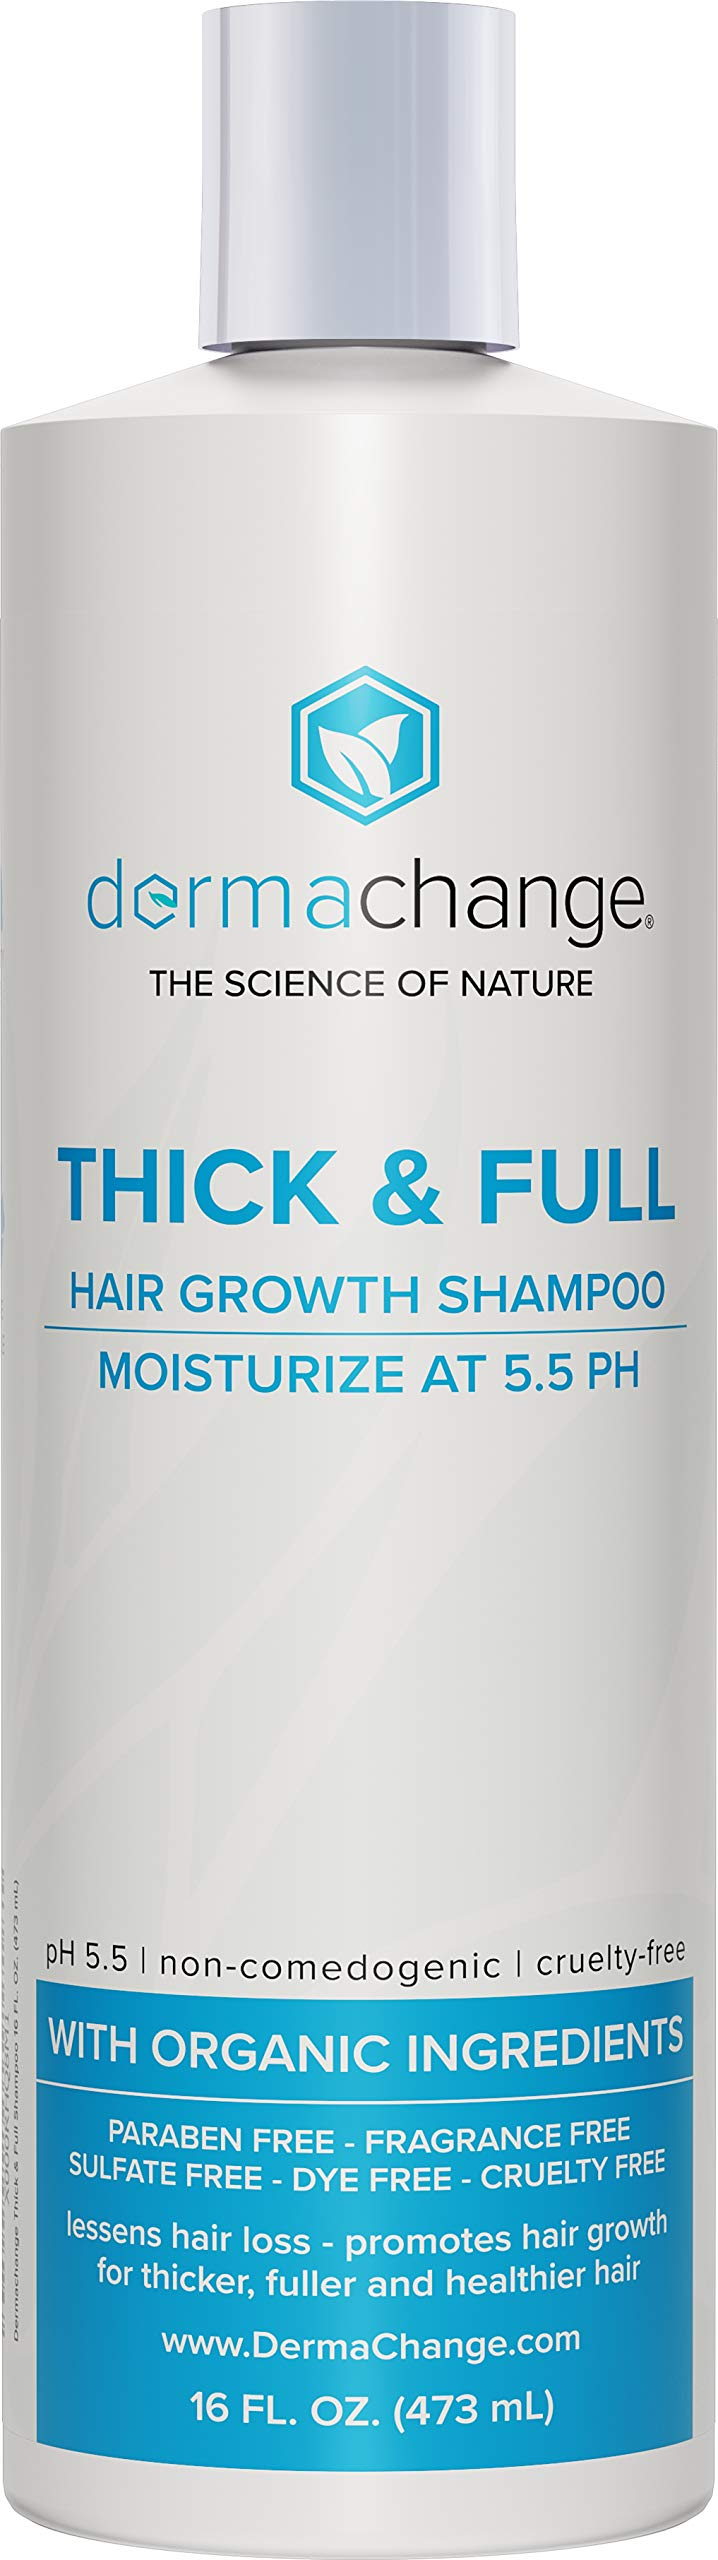 Thick and Full Hair Growth Shampoo - with Organic Vitamins for Hair Growth - For Color Treated Hair - Paraben, Gluten and Sulfate Free - Hair Loss Treatments - Supports Regrowth (16oz) - Made in USA by DermaChange